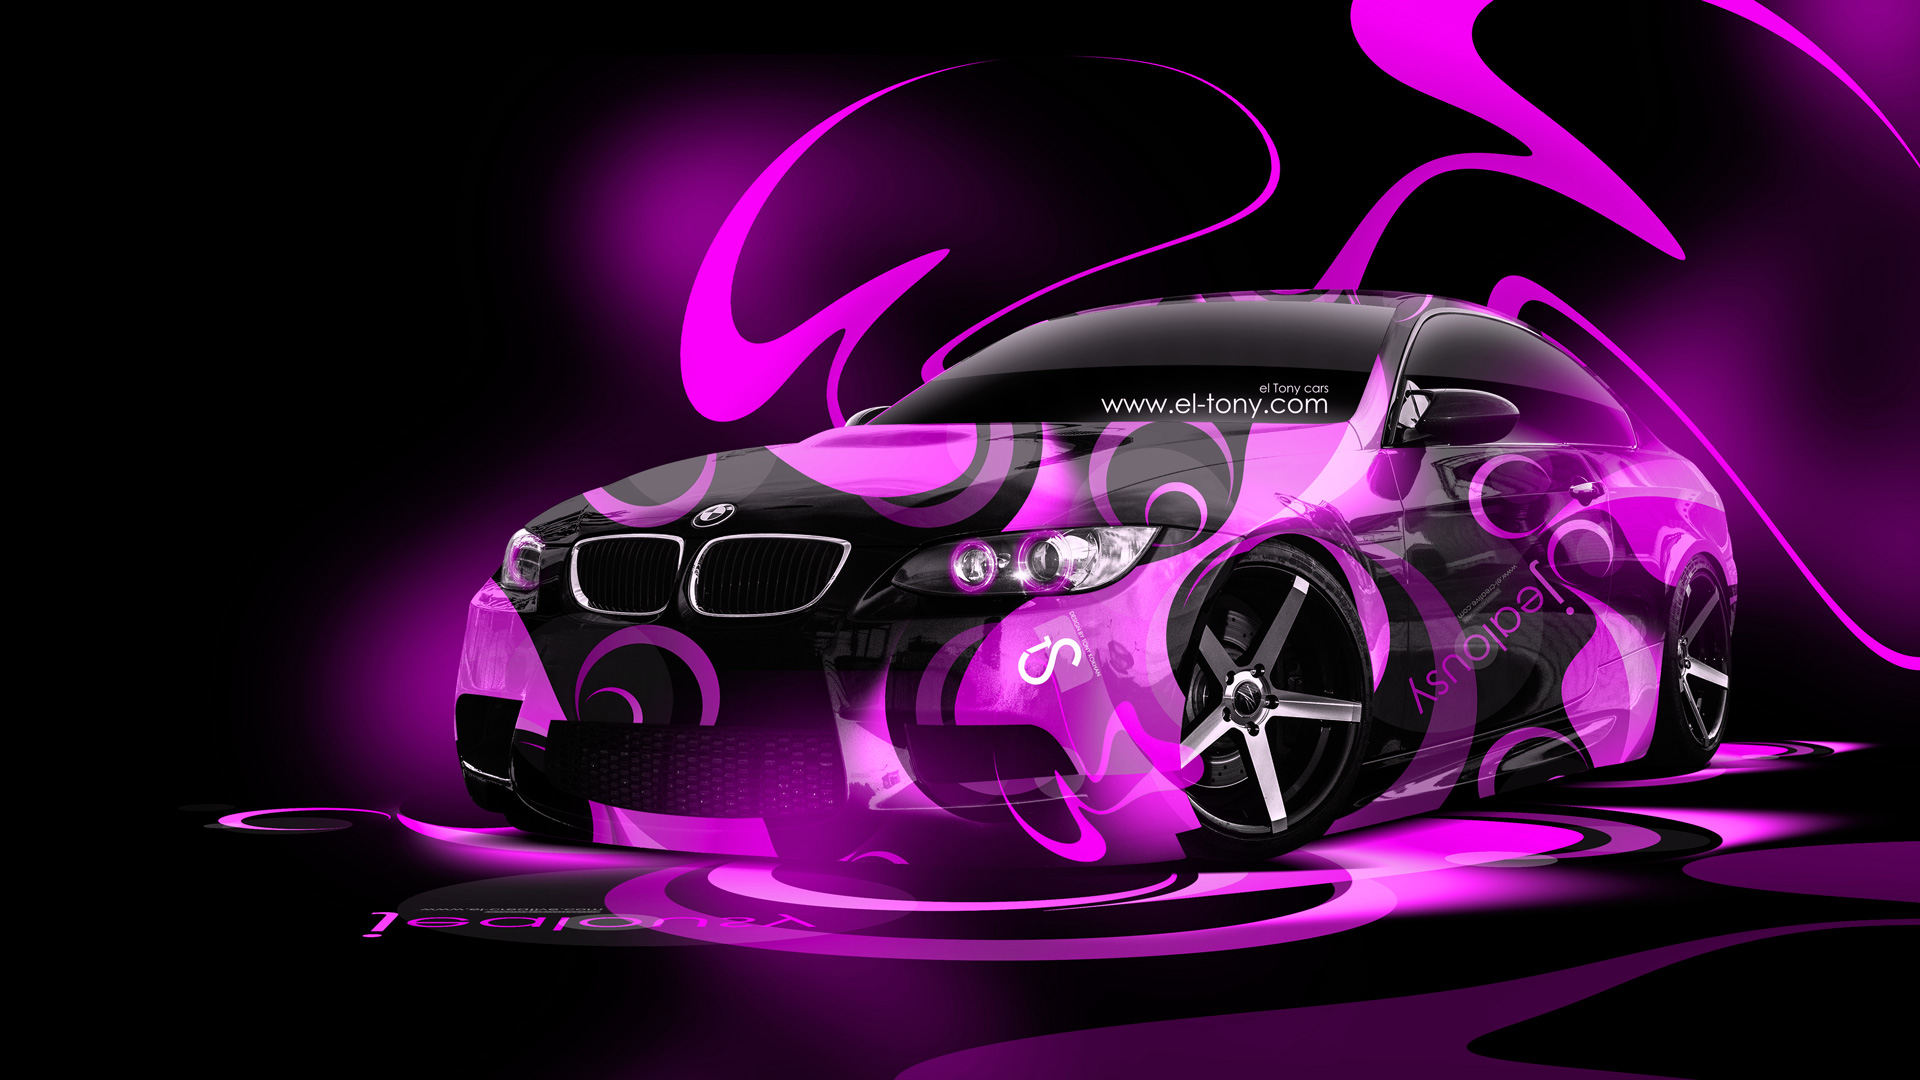 Cool 3d wallpapers cars